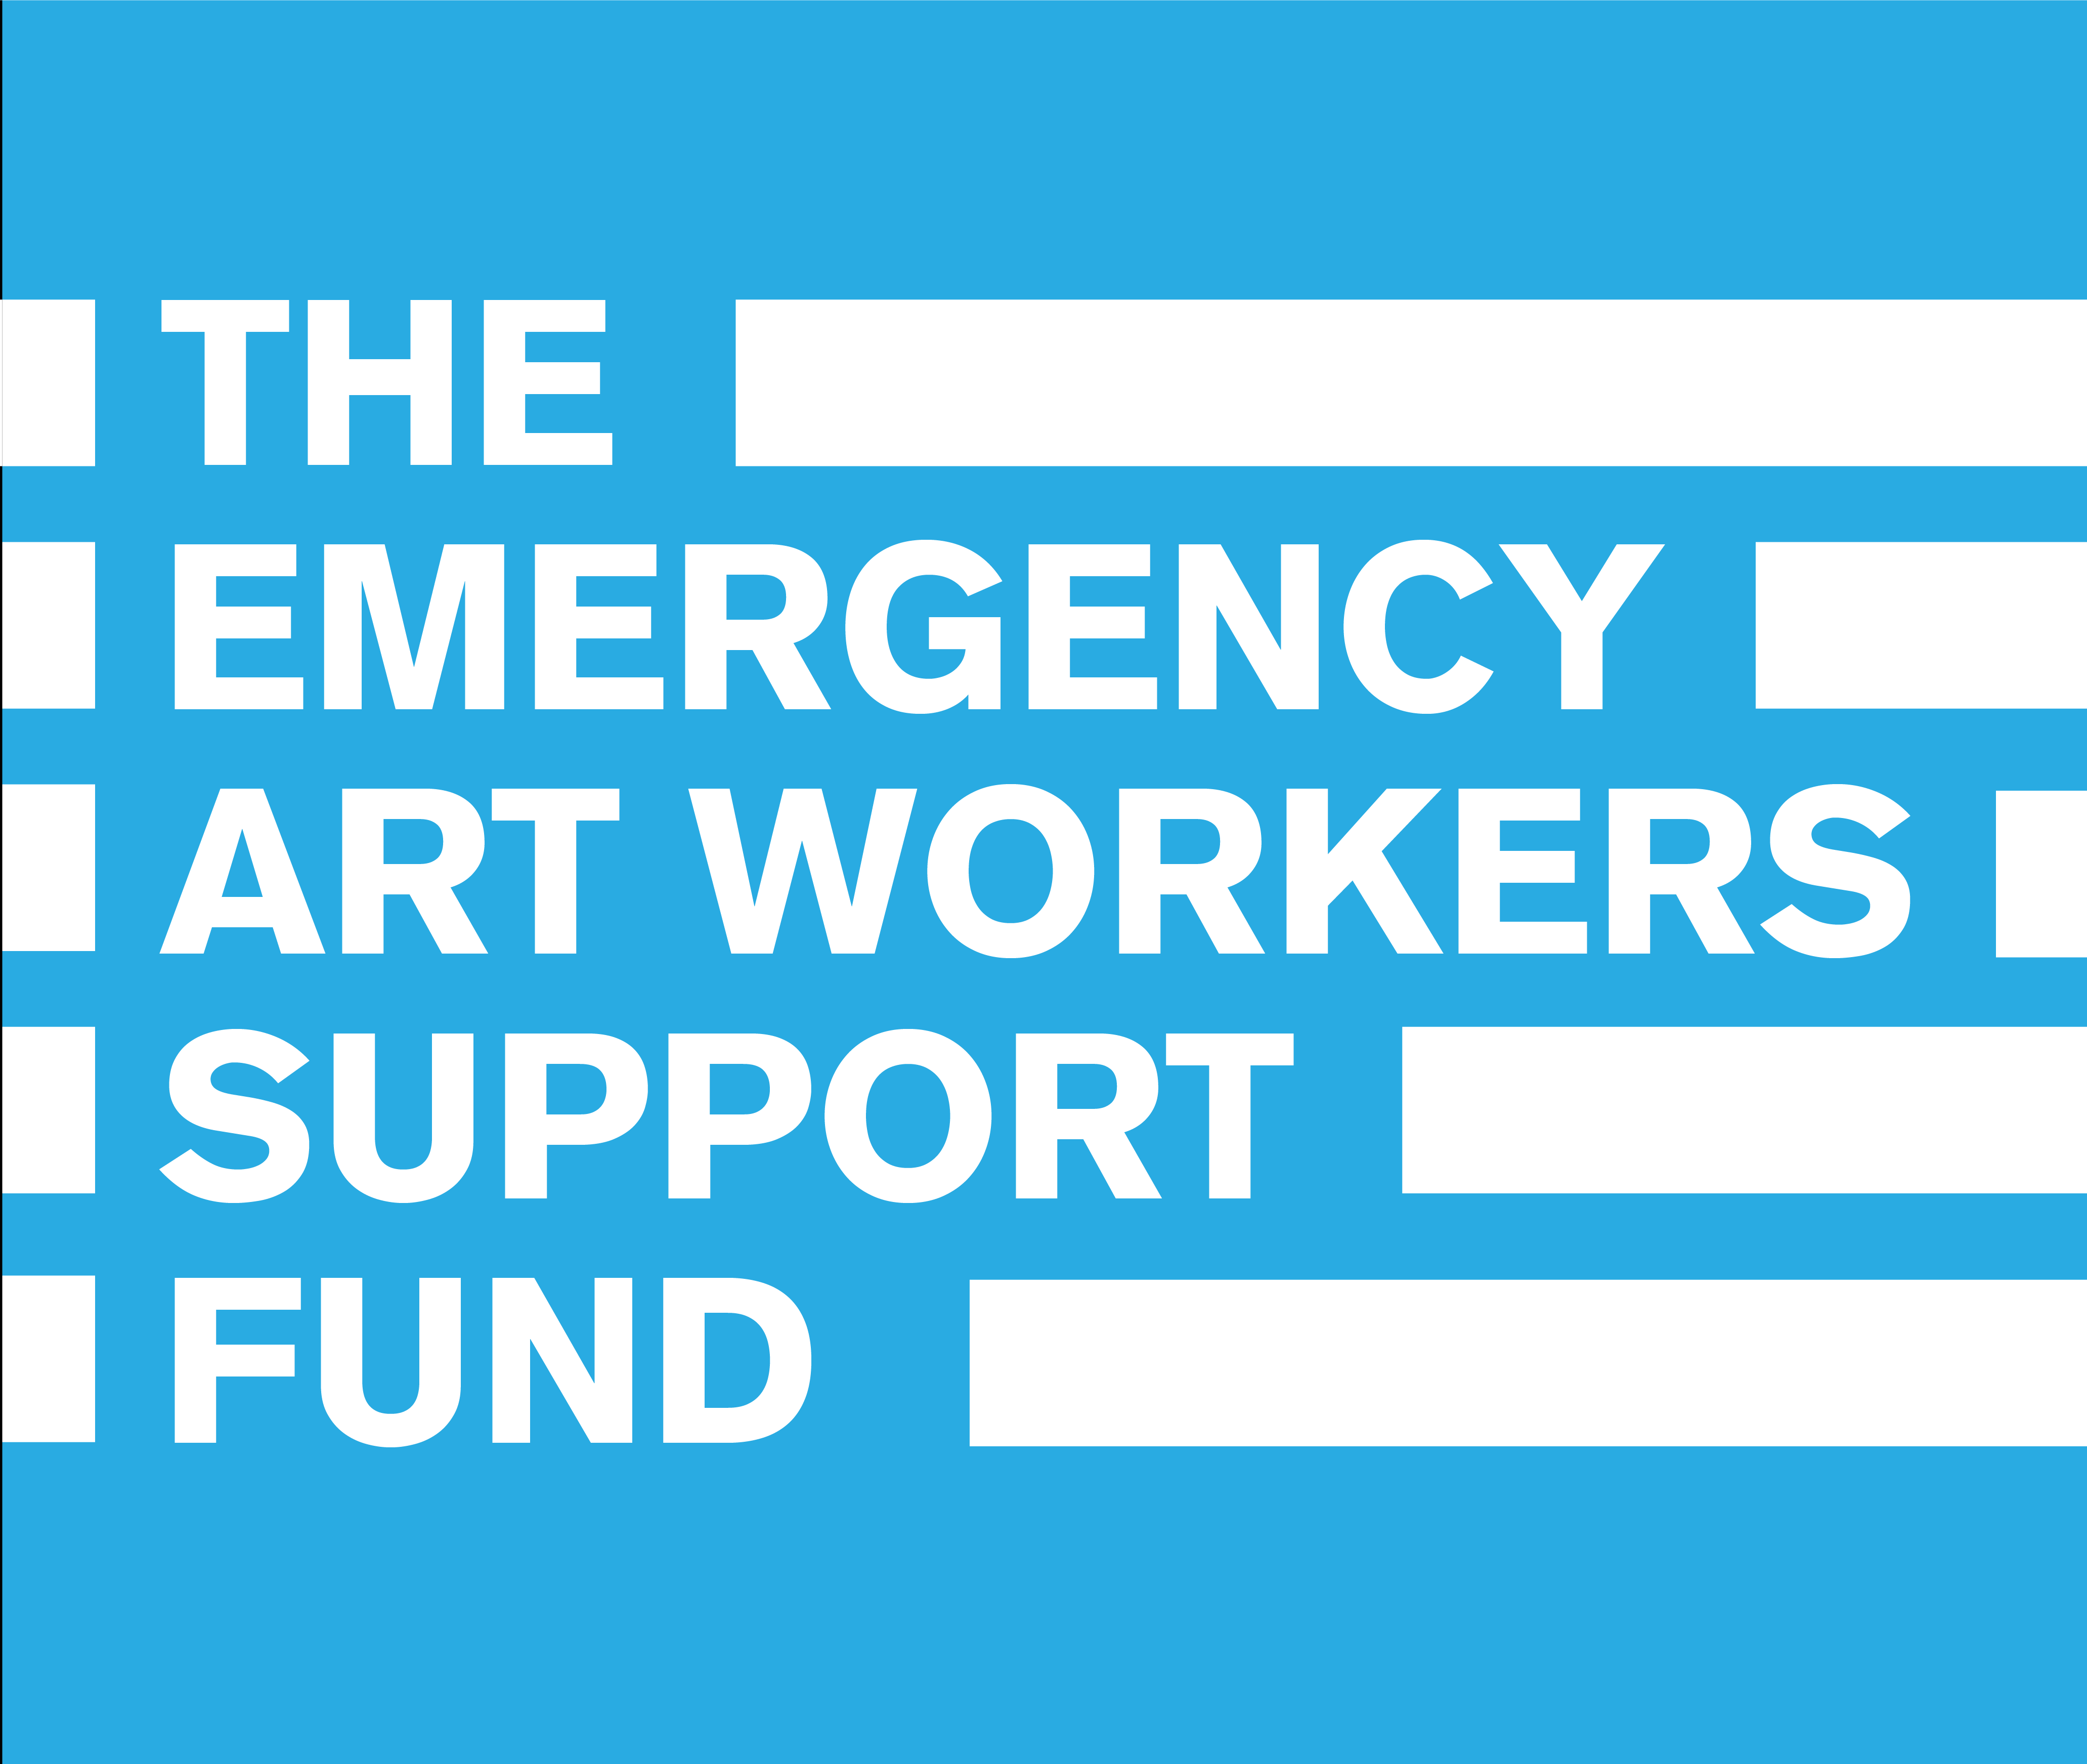 THE EMERGENCY ART WORKERS SUPPORT FUND